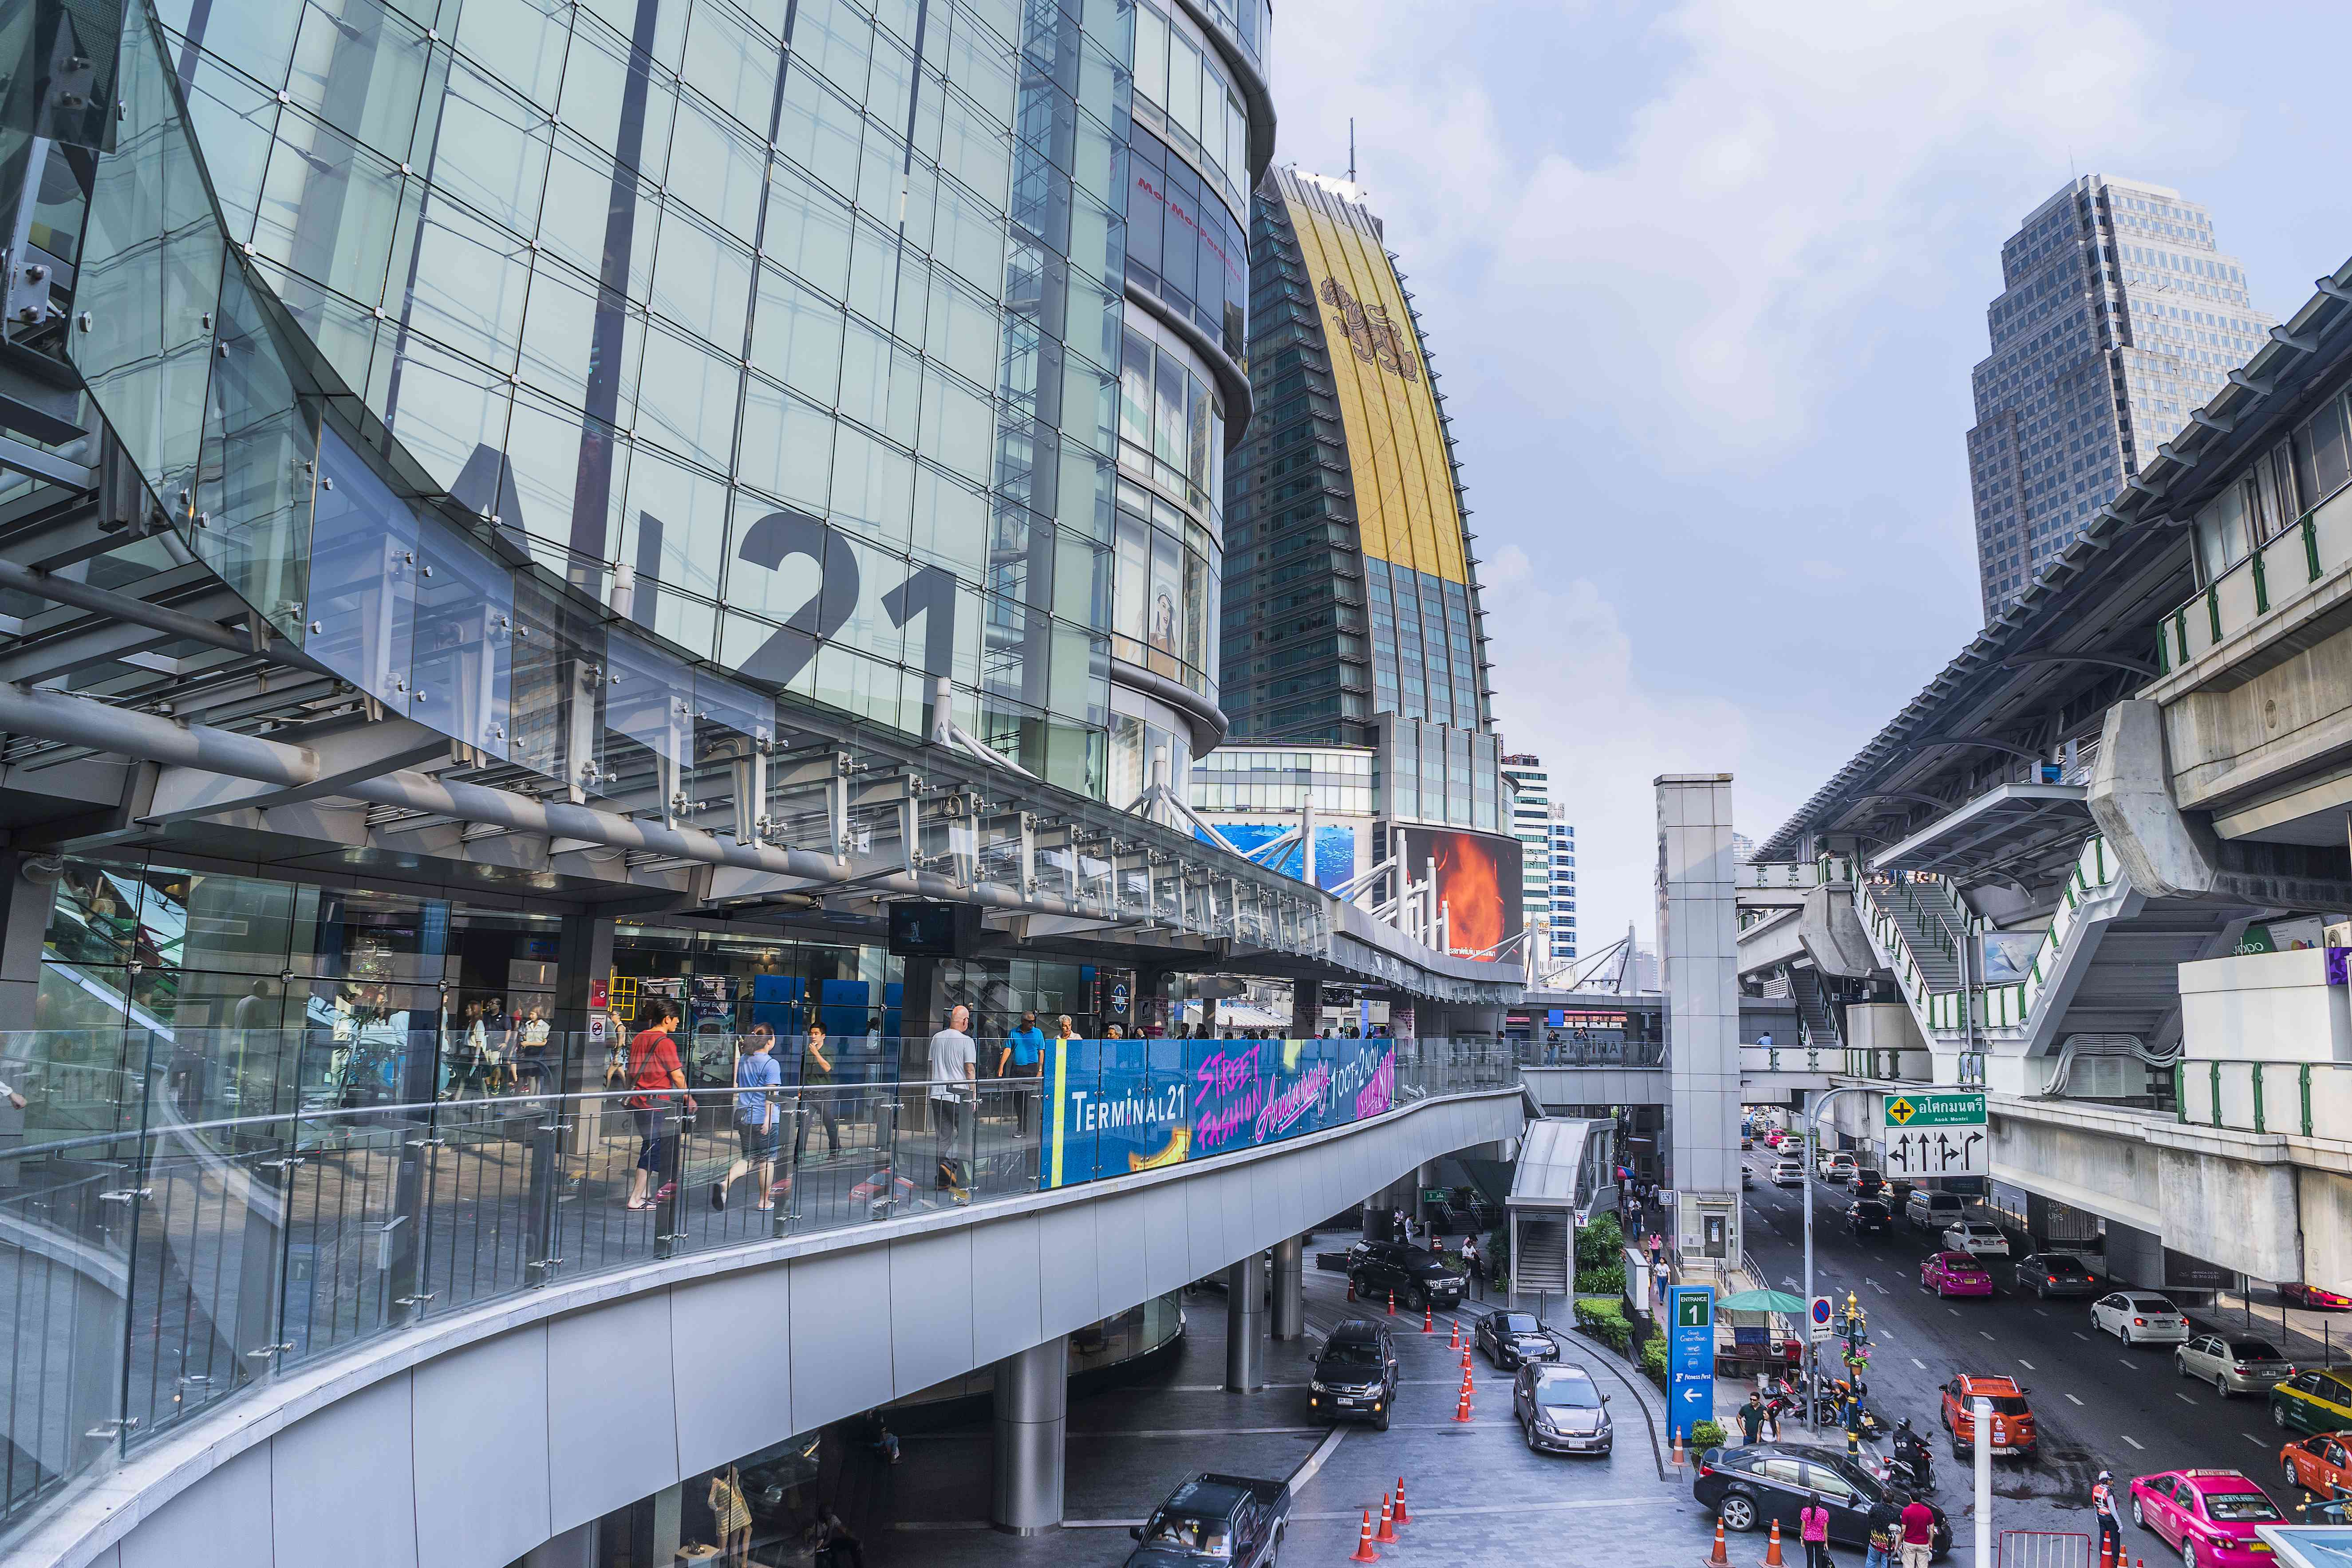 Outside view of the Terminal 21 Mall in Bangkok